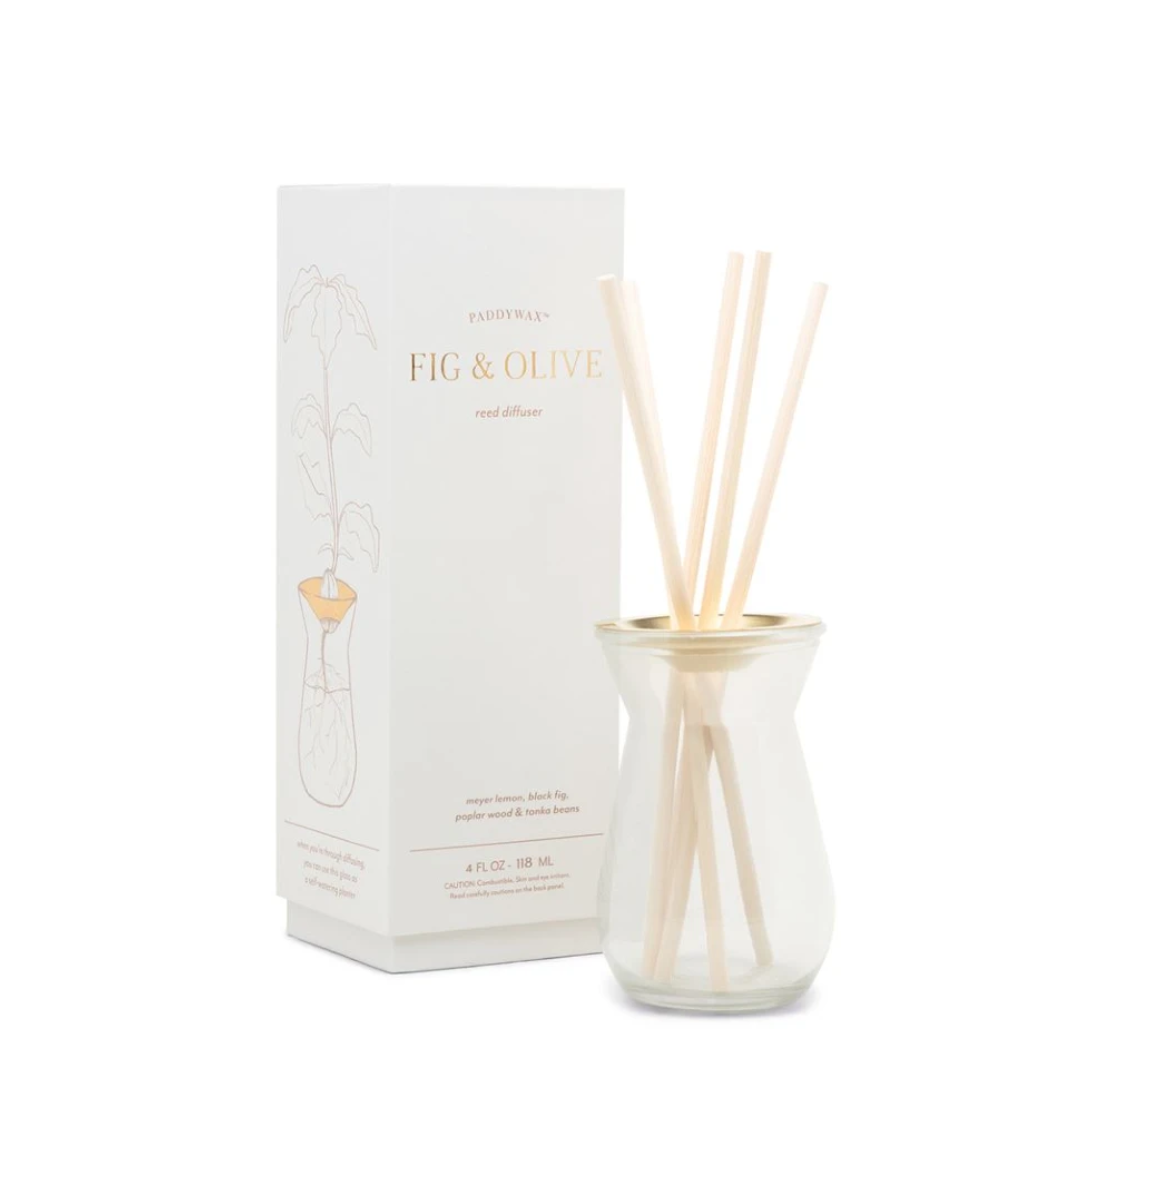 PADDYWAX Flora Diffuser-Fig and Olive